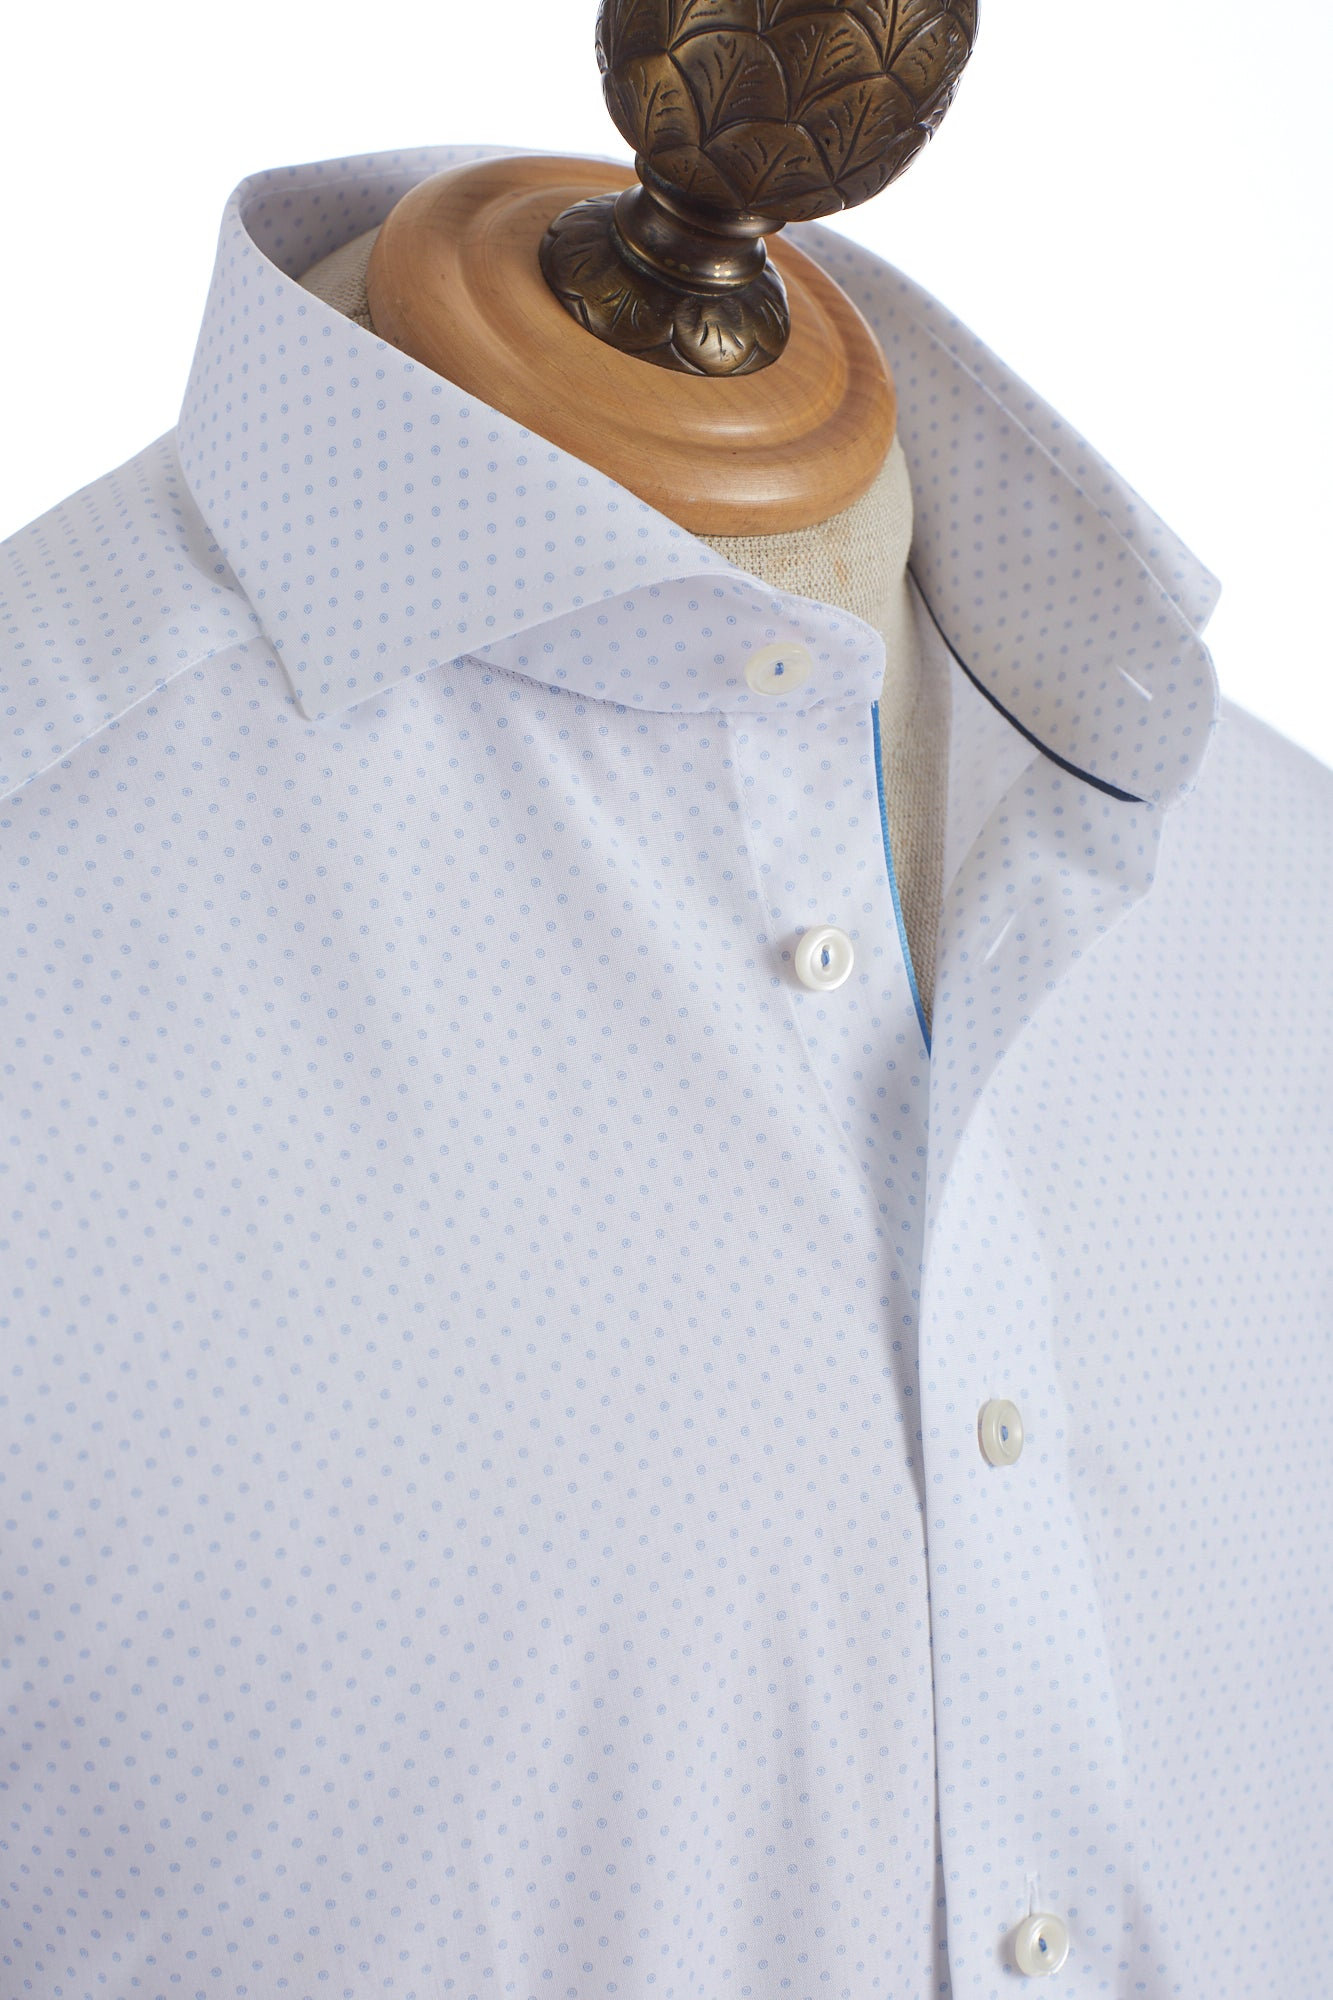 Eton Circle Dot Print Shirt Collar